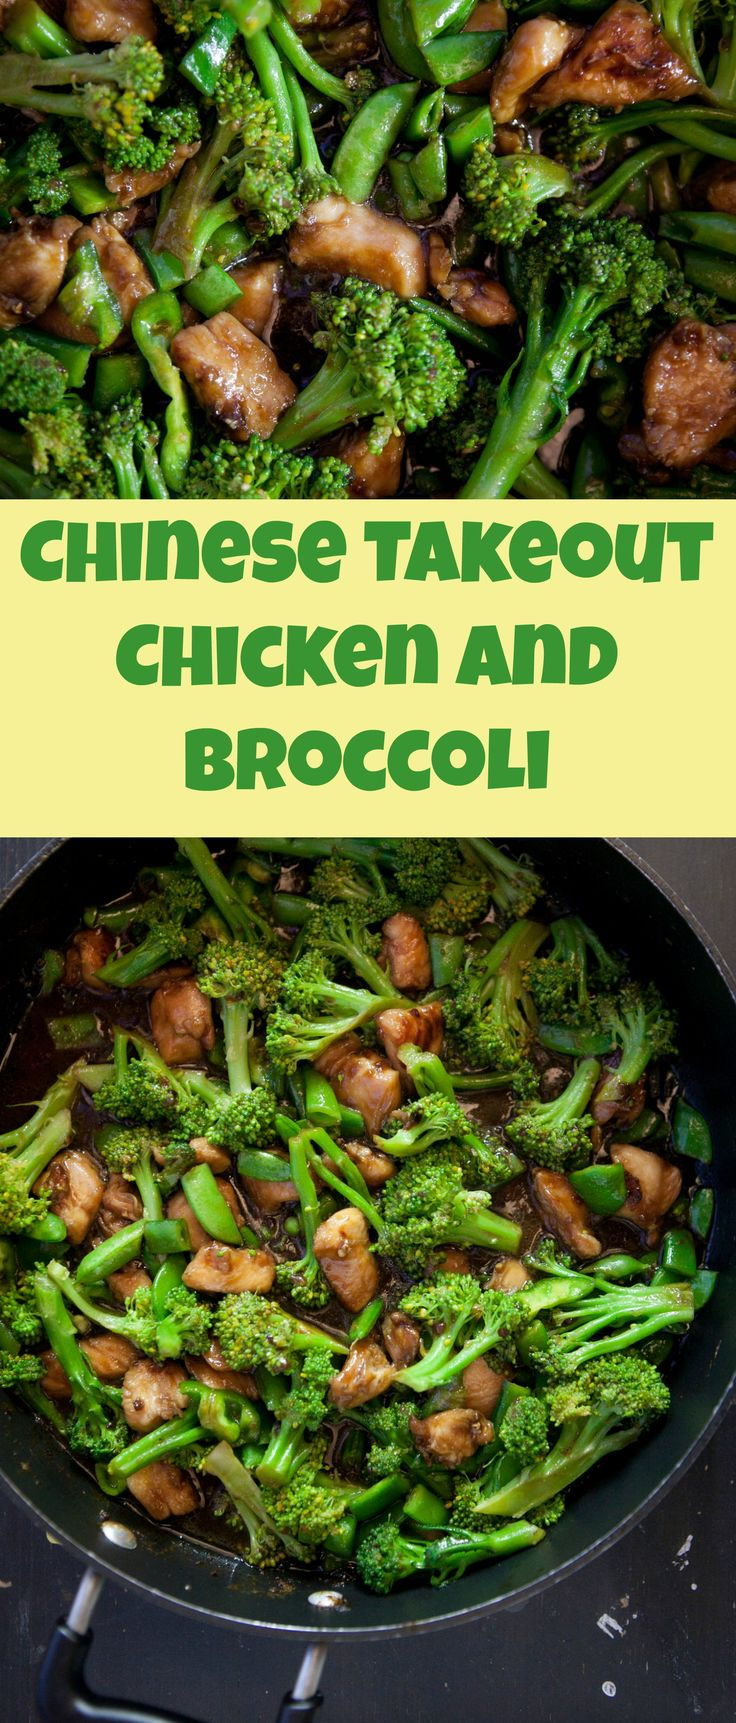 Best 25 chicken and broccoli chinese ideas on pinterest recipe chinese takeout chicken and broccoli forumfinder Image collections